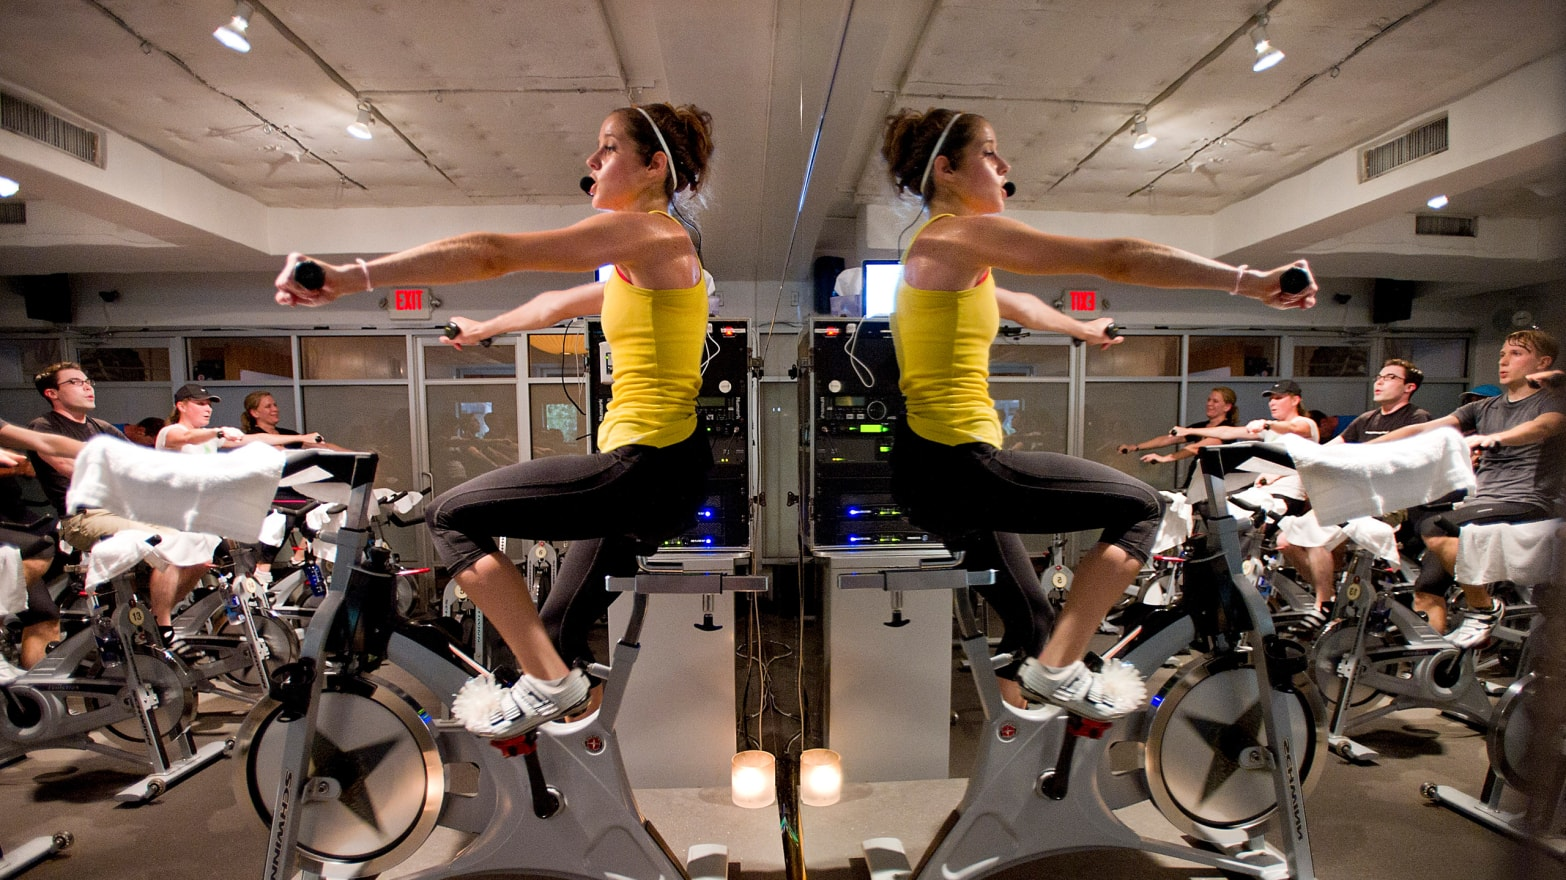 4fe956a2de7b SoulCycle Is a Booming Exercise Chain for the 1 Percent